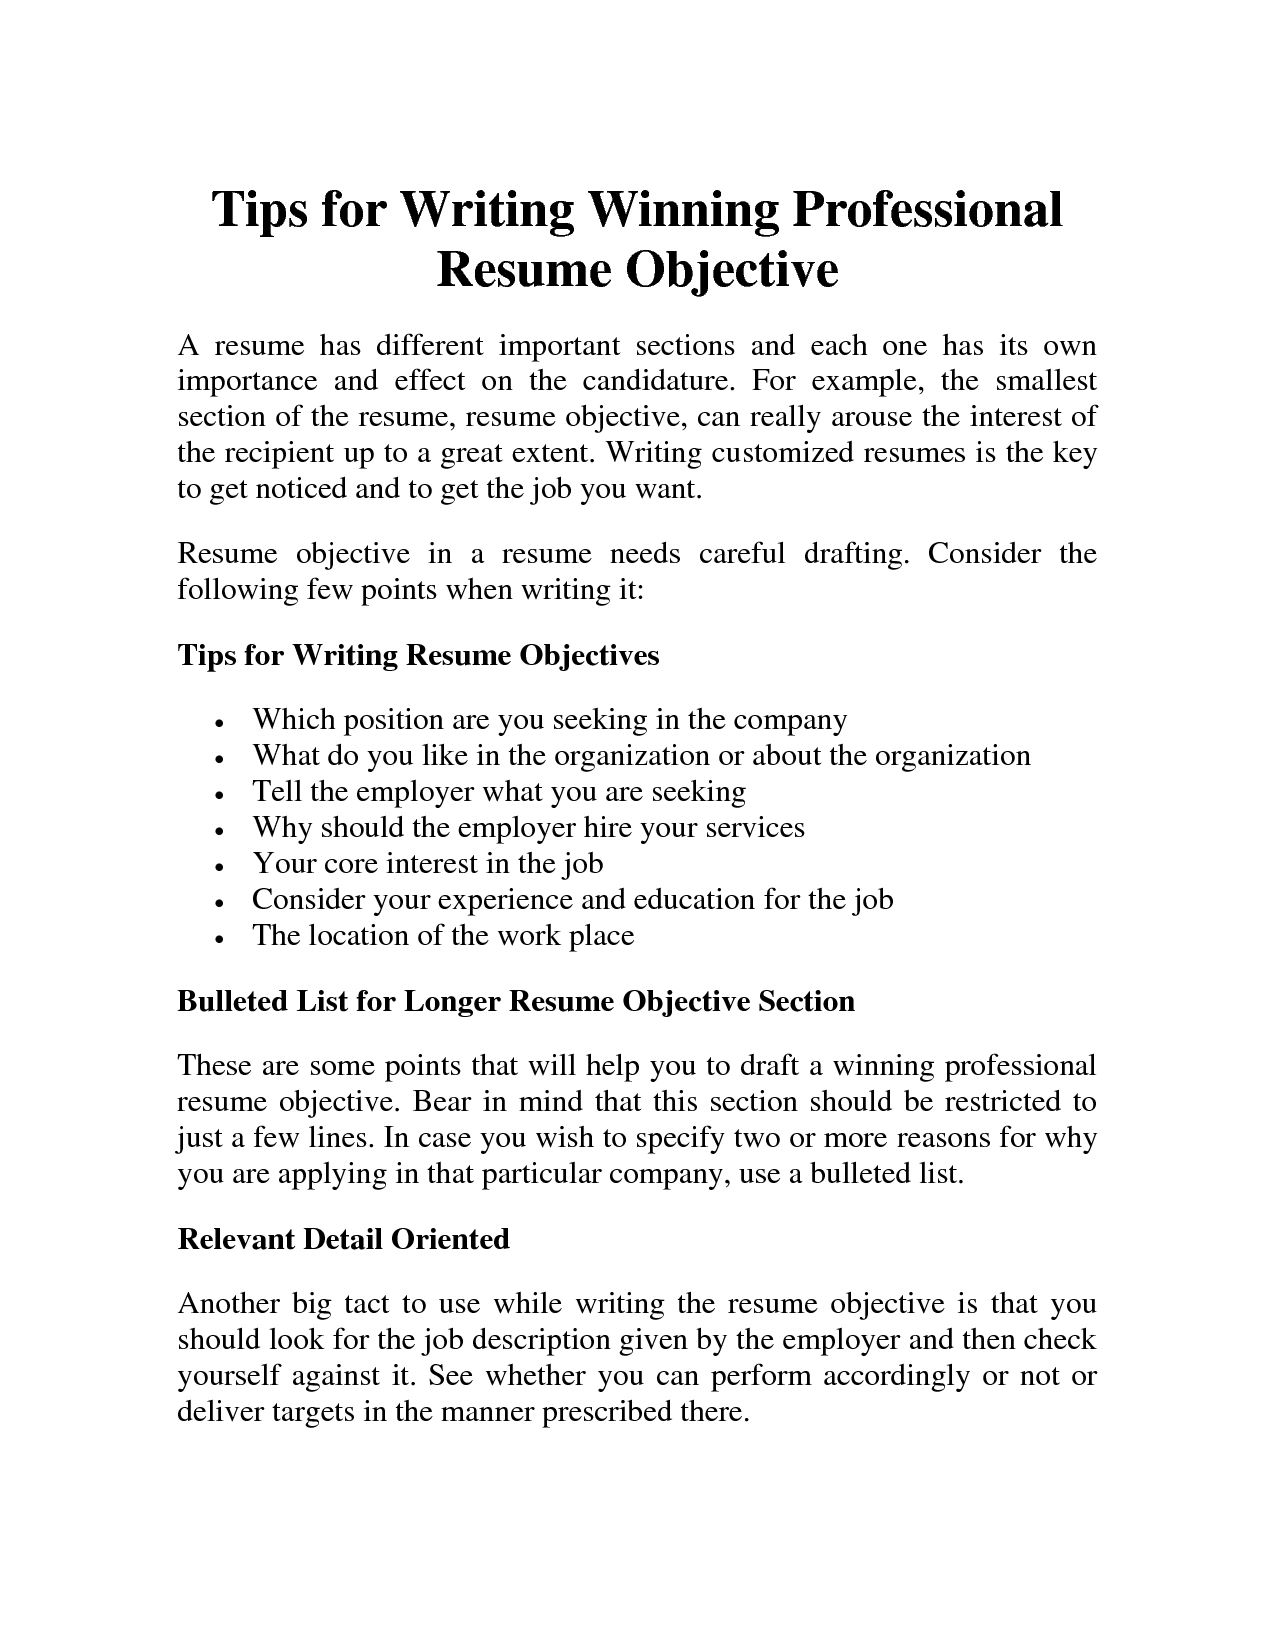 Professional Resume Objective Samplesprofessional Resume Objective